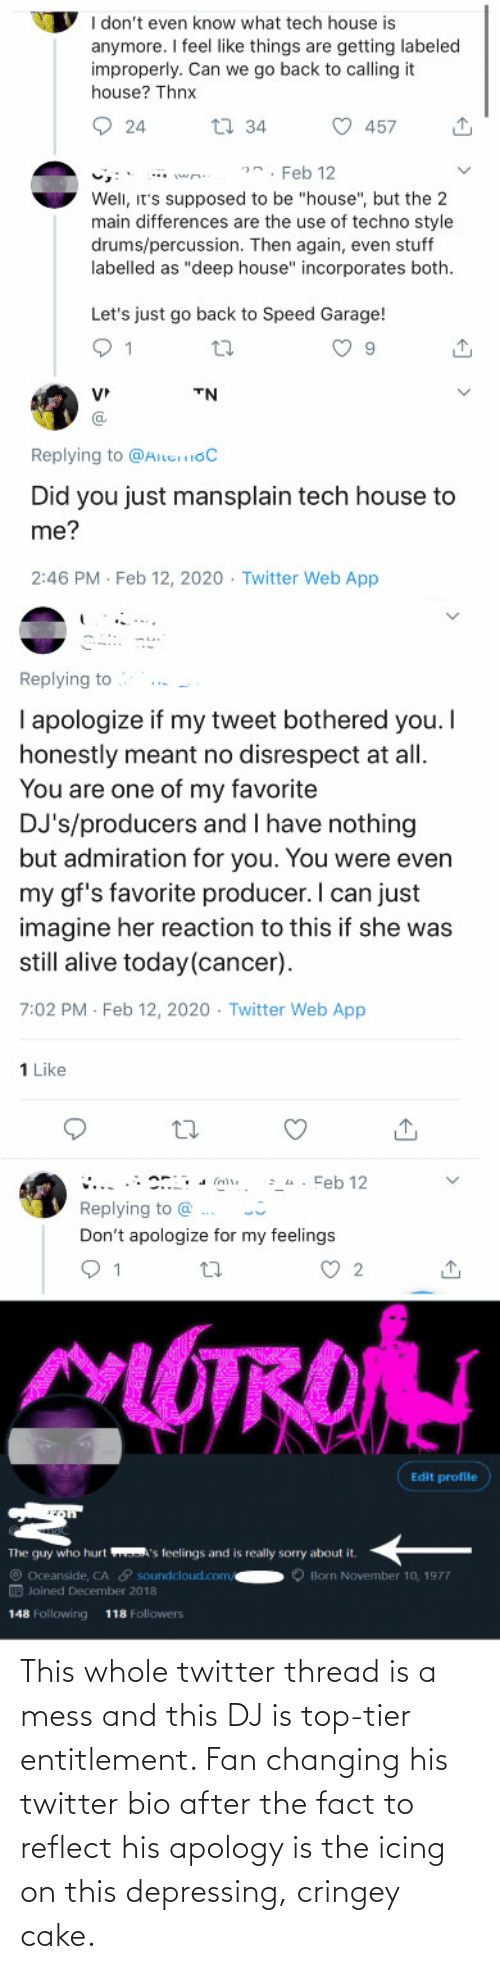 Twitter, Cake, and Apology: This whole twitter thread is a mess and this DJ is top-tier entitlement. Fan changing his twitter bio after the fact to reflect his apology is the icing on this depressing, cringey cake.